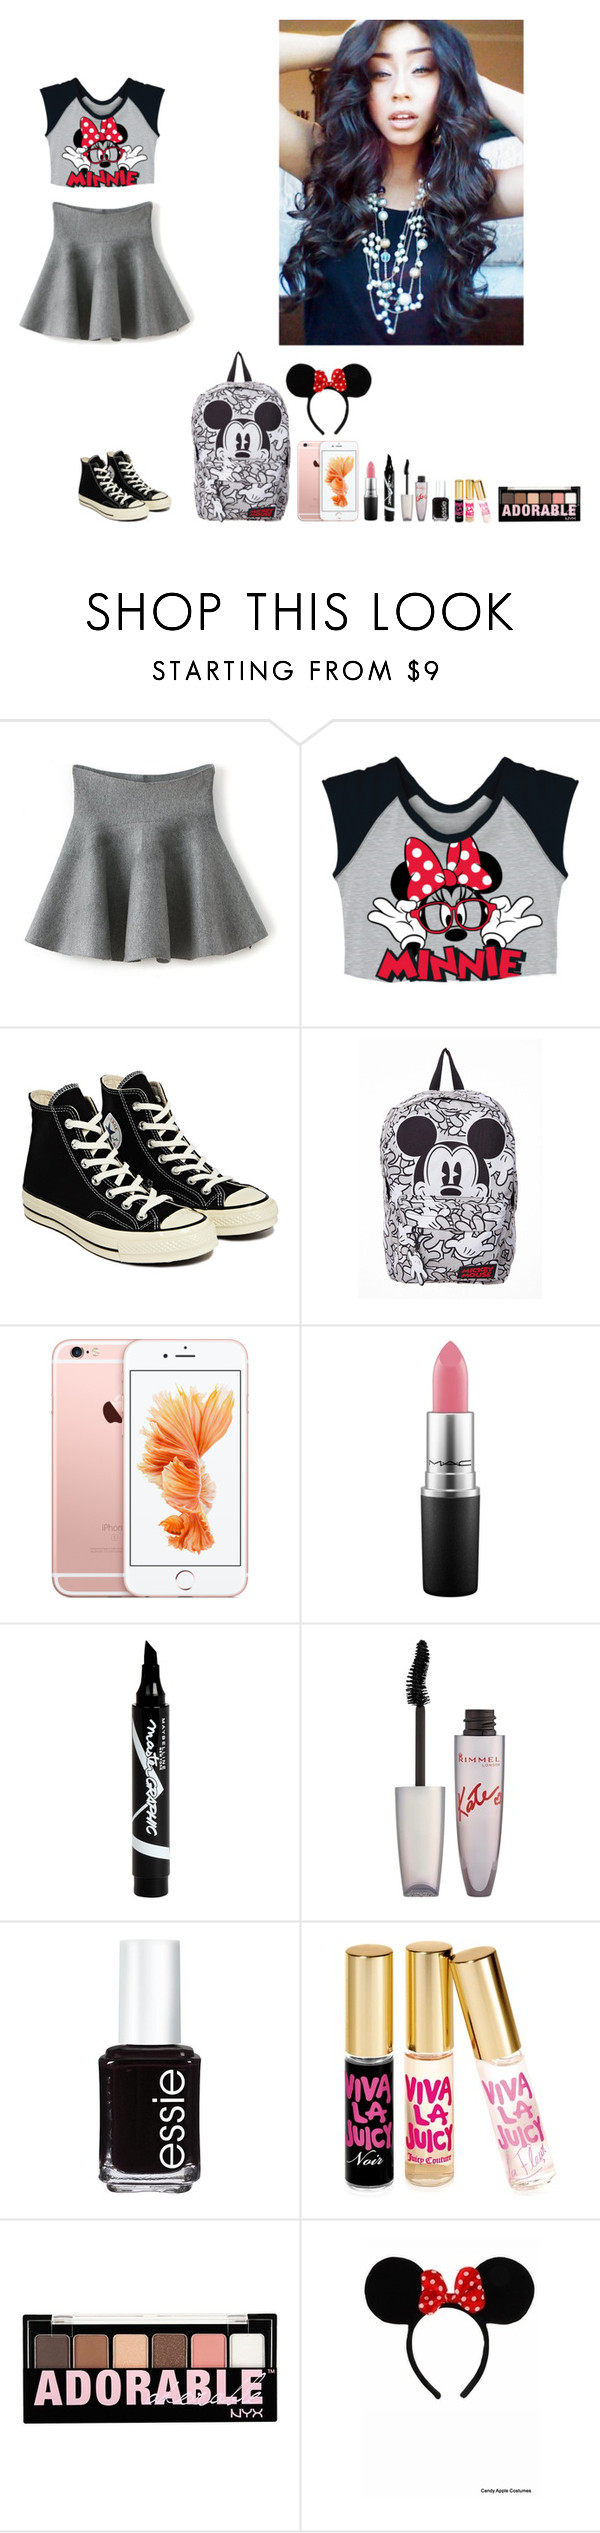 """""""-Krissy"""" by krissyk-15 on Polyvore featuring Converse, MAC Cosmetics, Maybelline, Rimmel, Essie, Juicy Couture, NYX, Disney, women's clothing and women's fashion"""